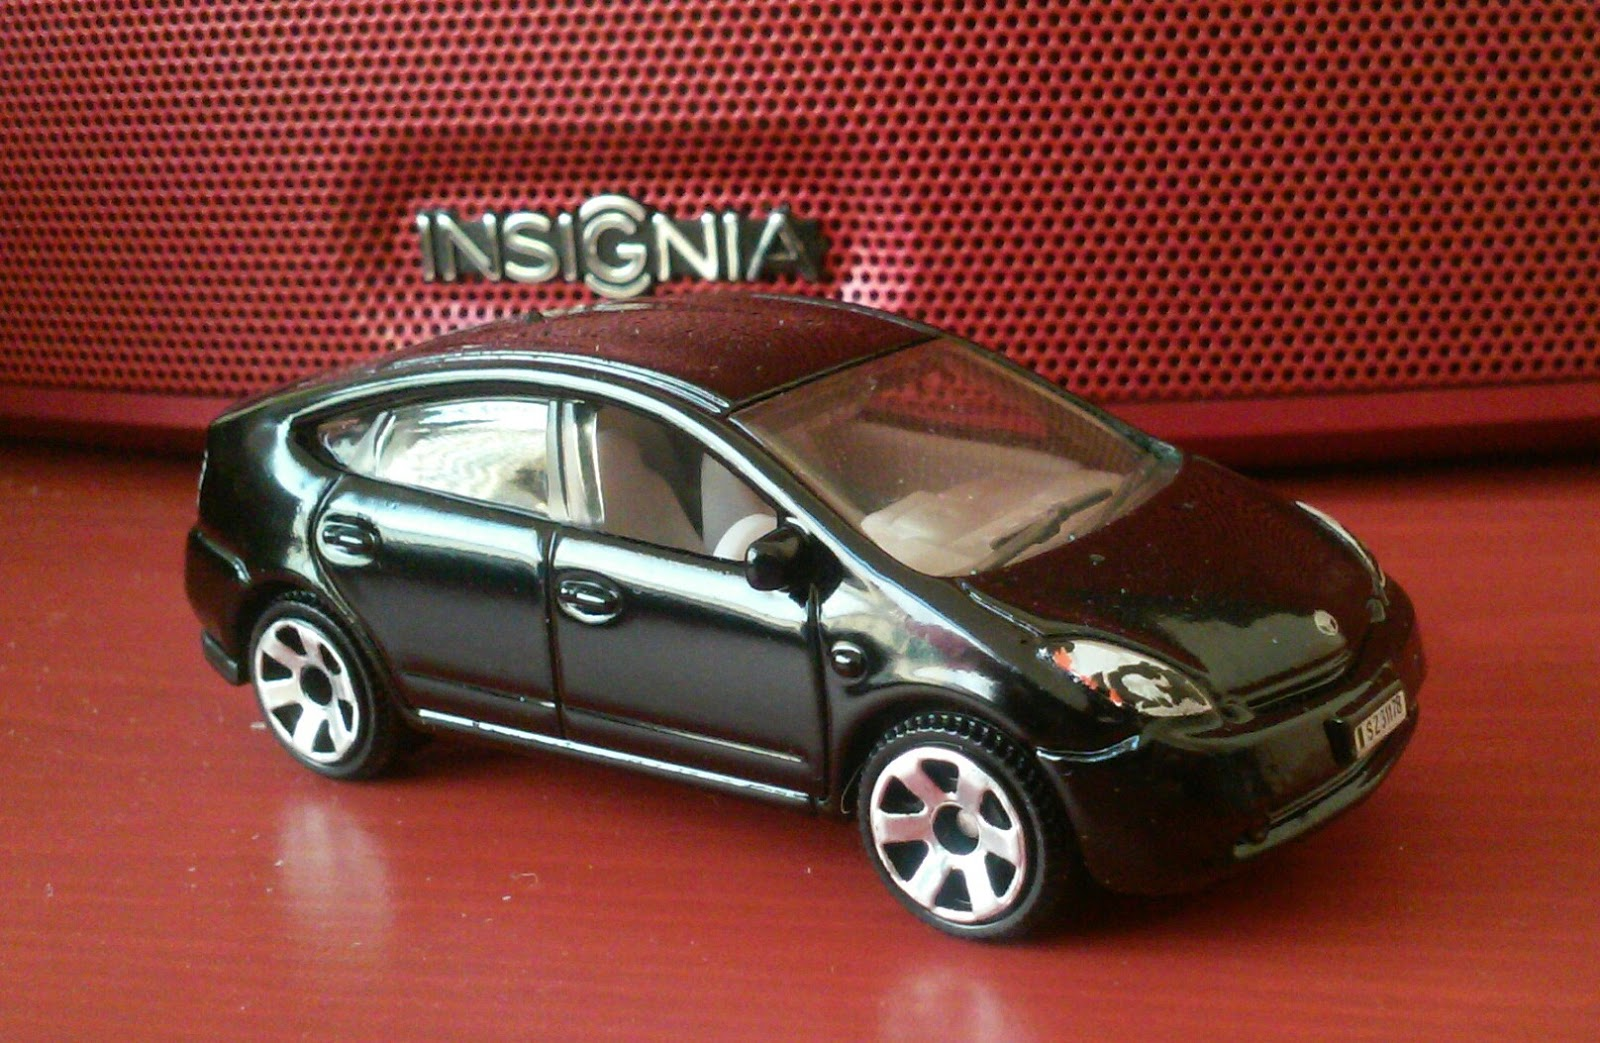 Here Is My Shiny Black Matchbox Toyota Prius This Car Only Makes Blood Race When Its Ahead Of Me In Traffic With The Driving Texting